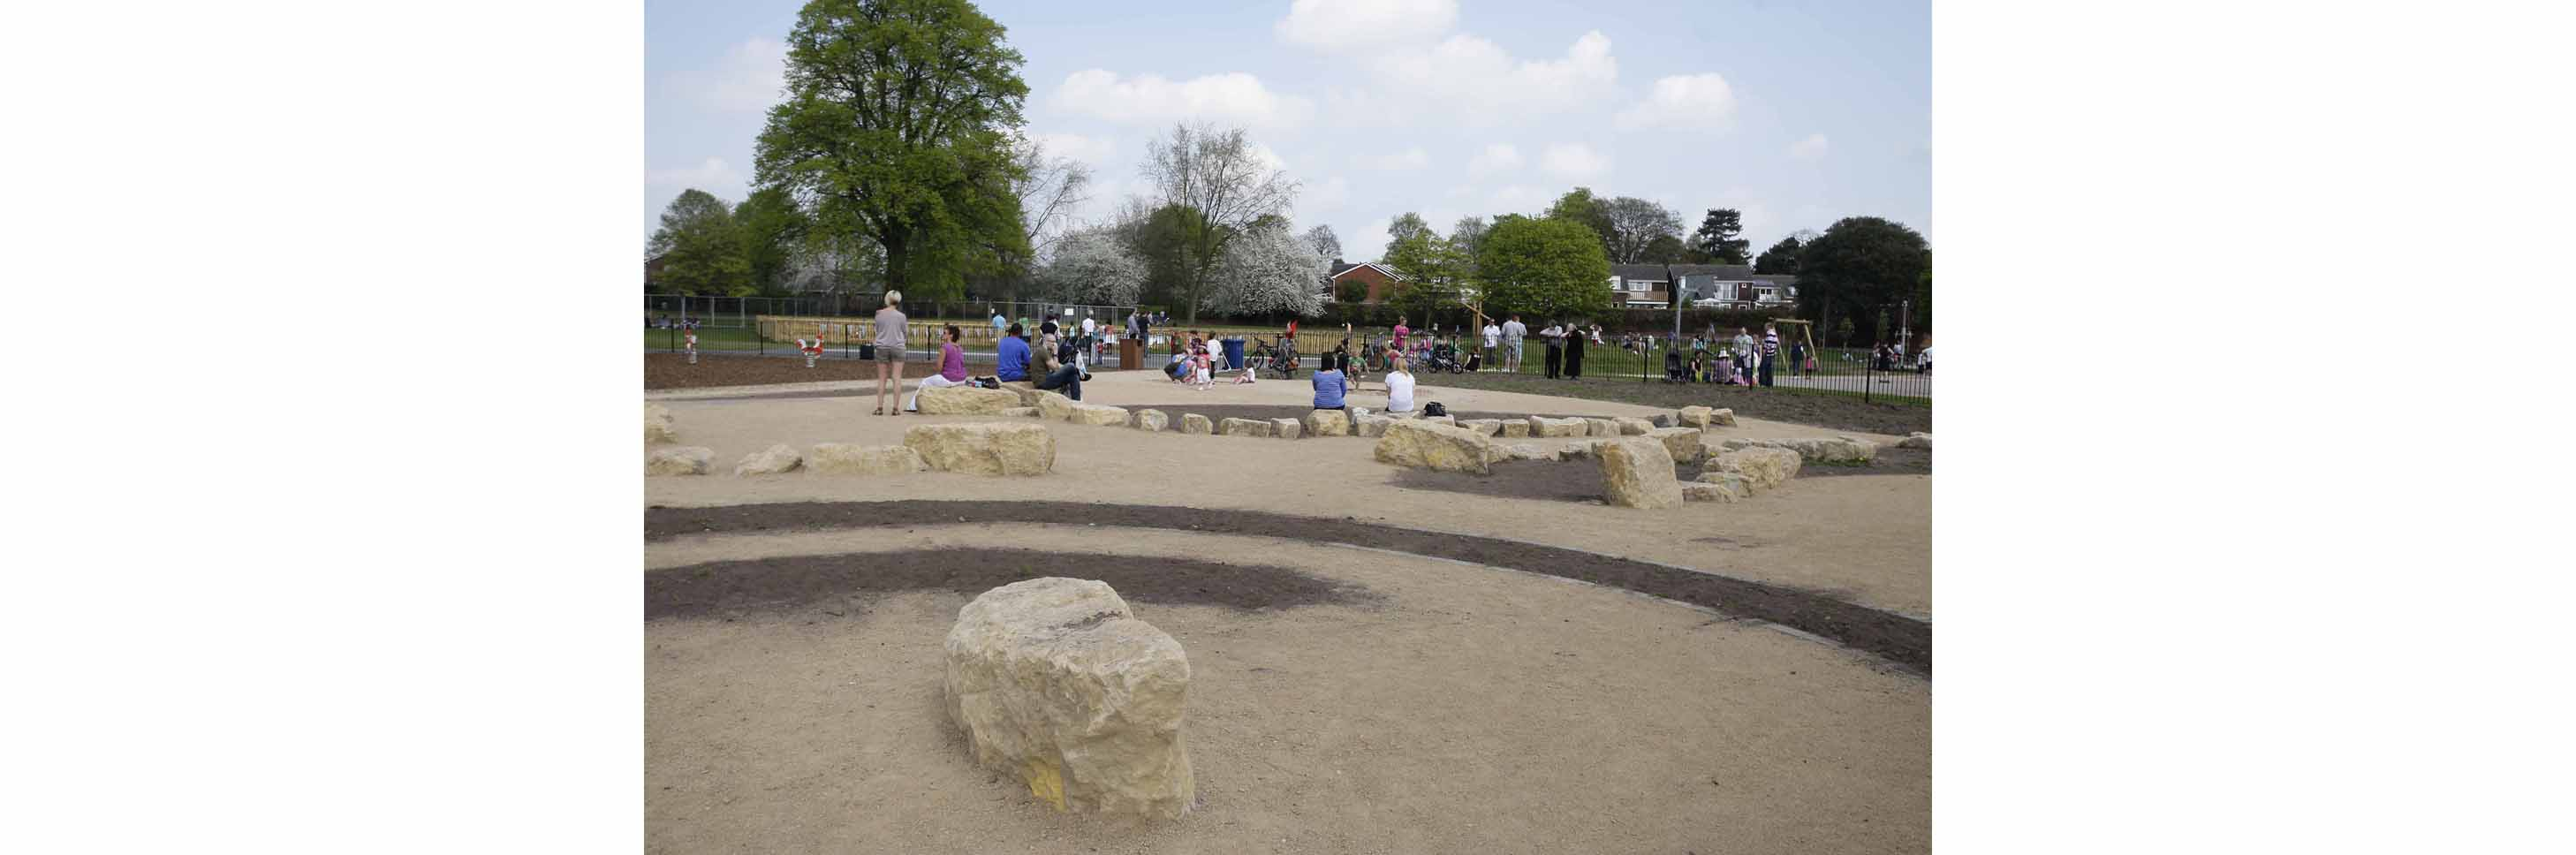 A NEW GBP4 million park criticised for a lack of play equipment has seen FIVE serious child accidents in its first three weeks.